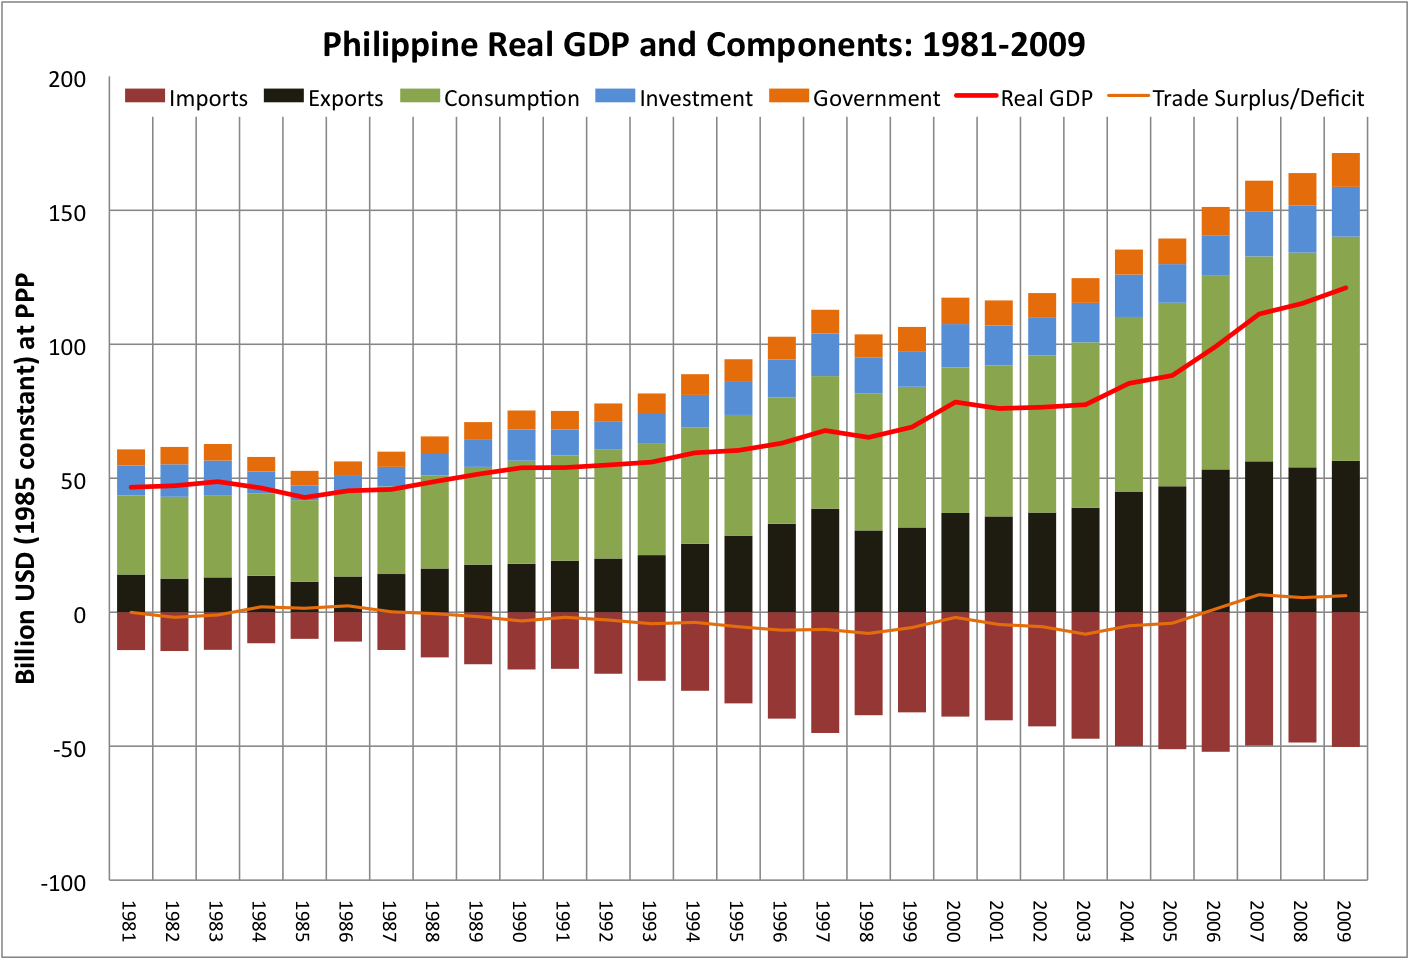 Philippines Real GDP and Components